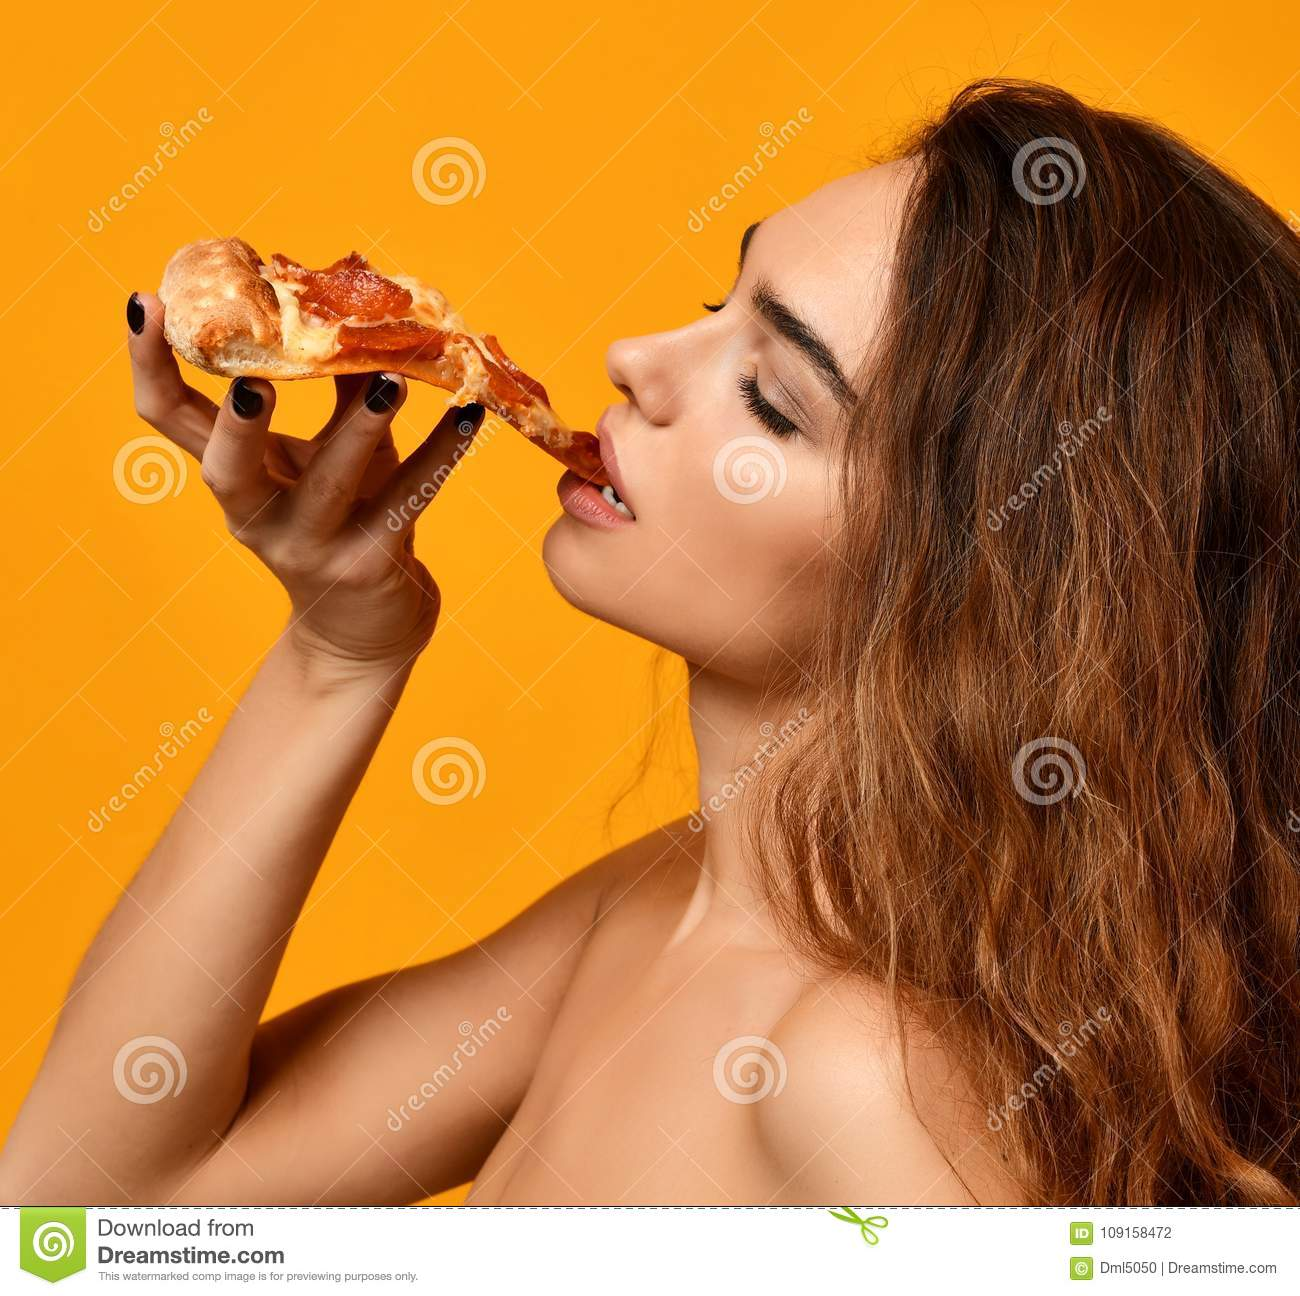 Young beautiful woman eat pepperoni pizza slice and hold whole pizza in box